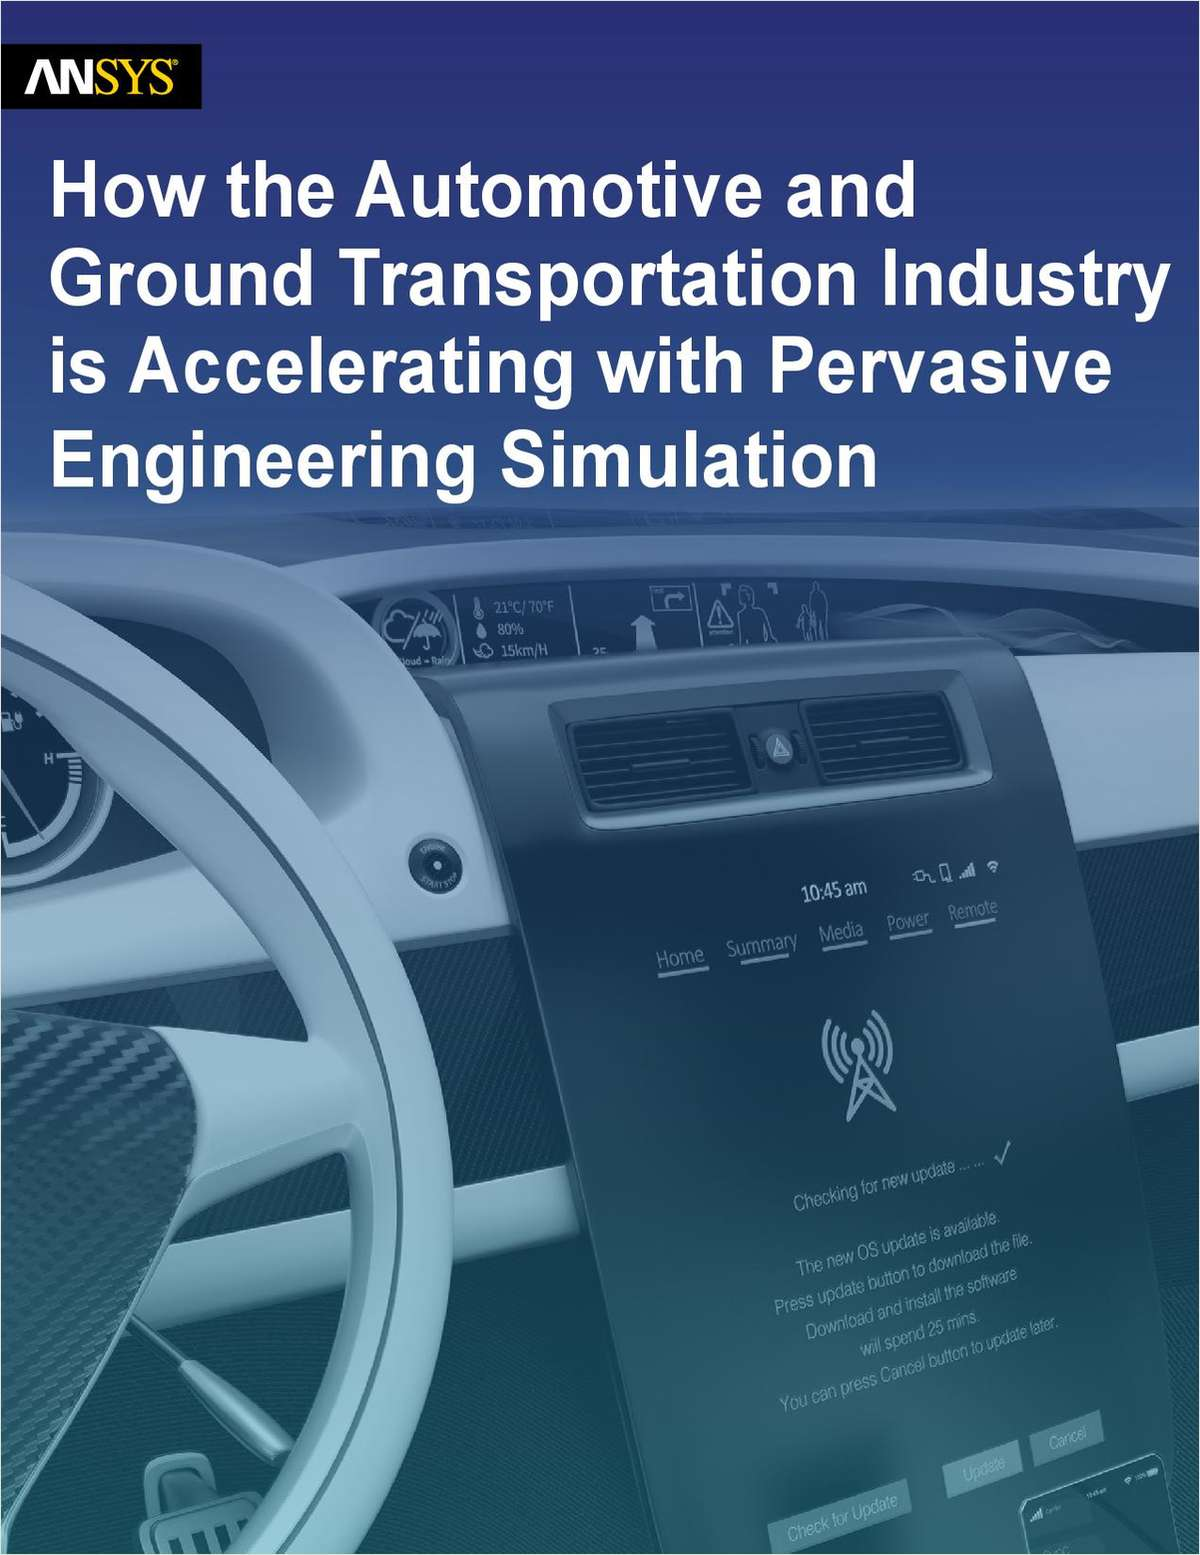 How the Automotive and Ground Transportation Industry is Accelerating with Pervasive Engineering Simulation